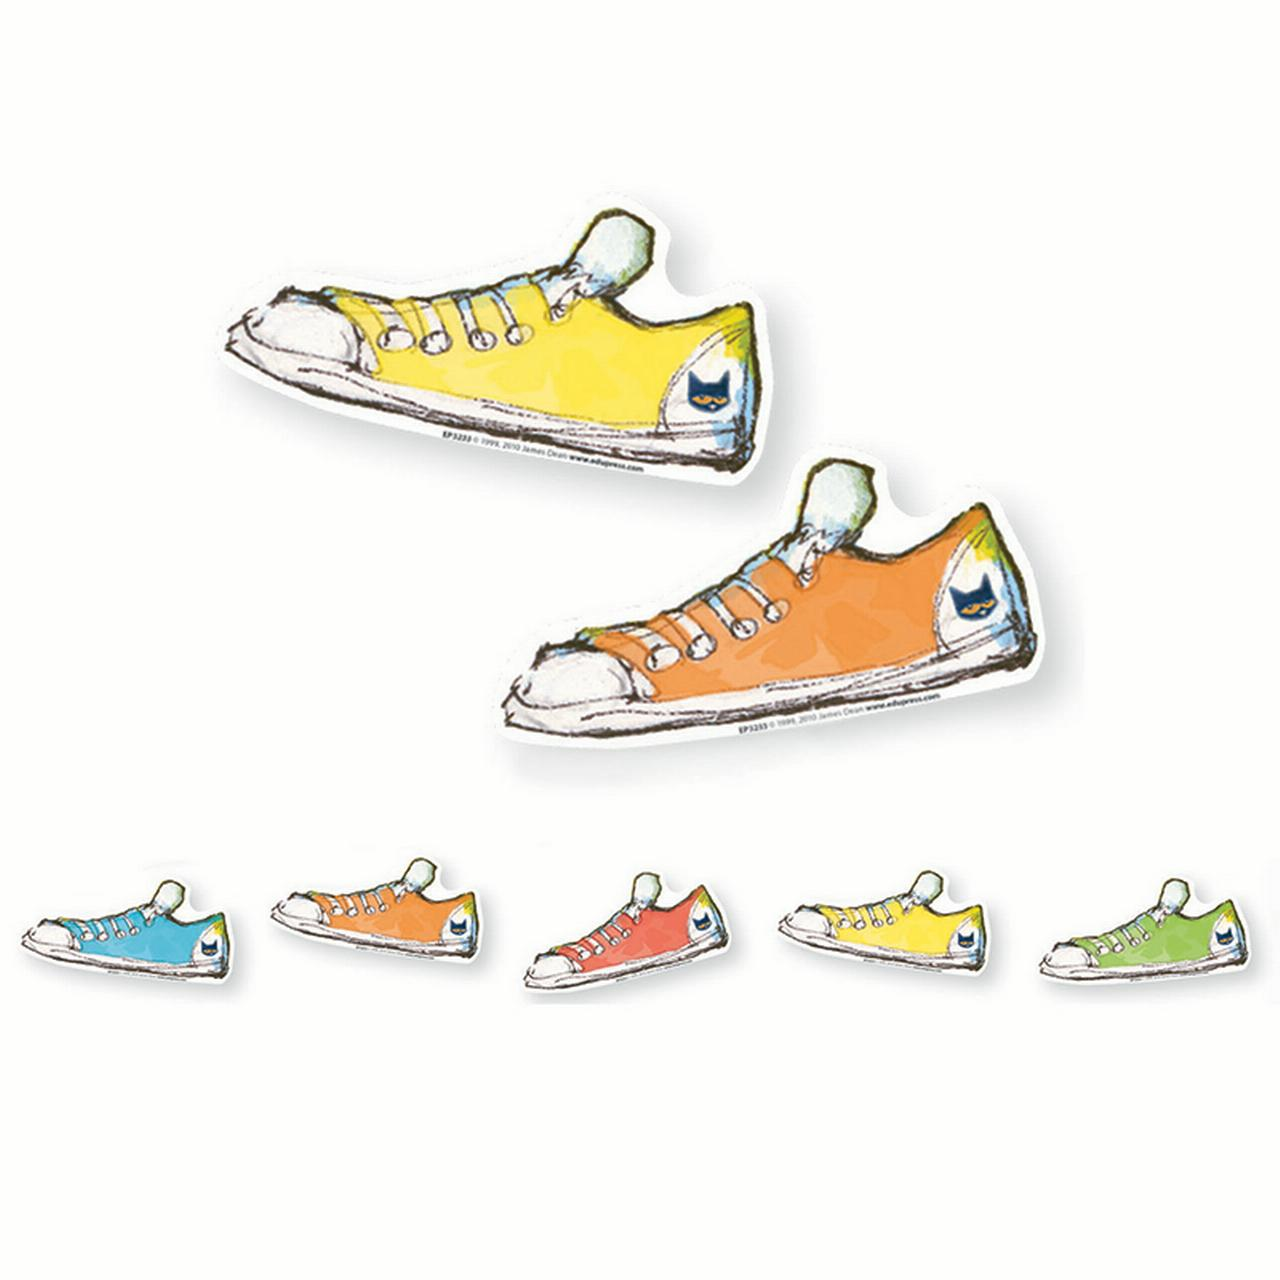 PETE THE CAT GROOVY SHOES ACCENTS PACK OF 36